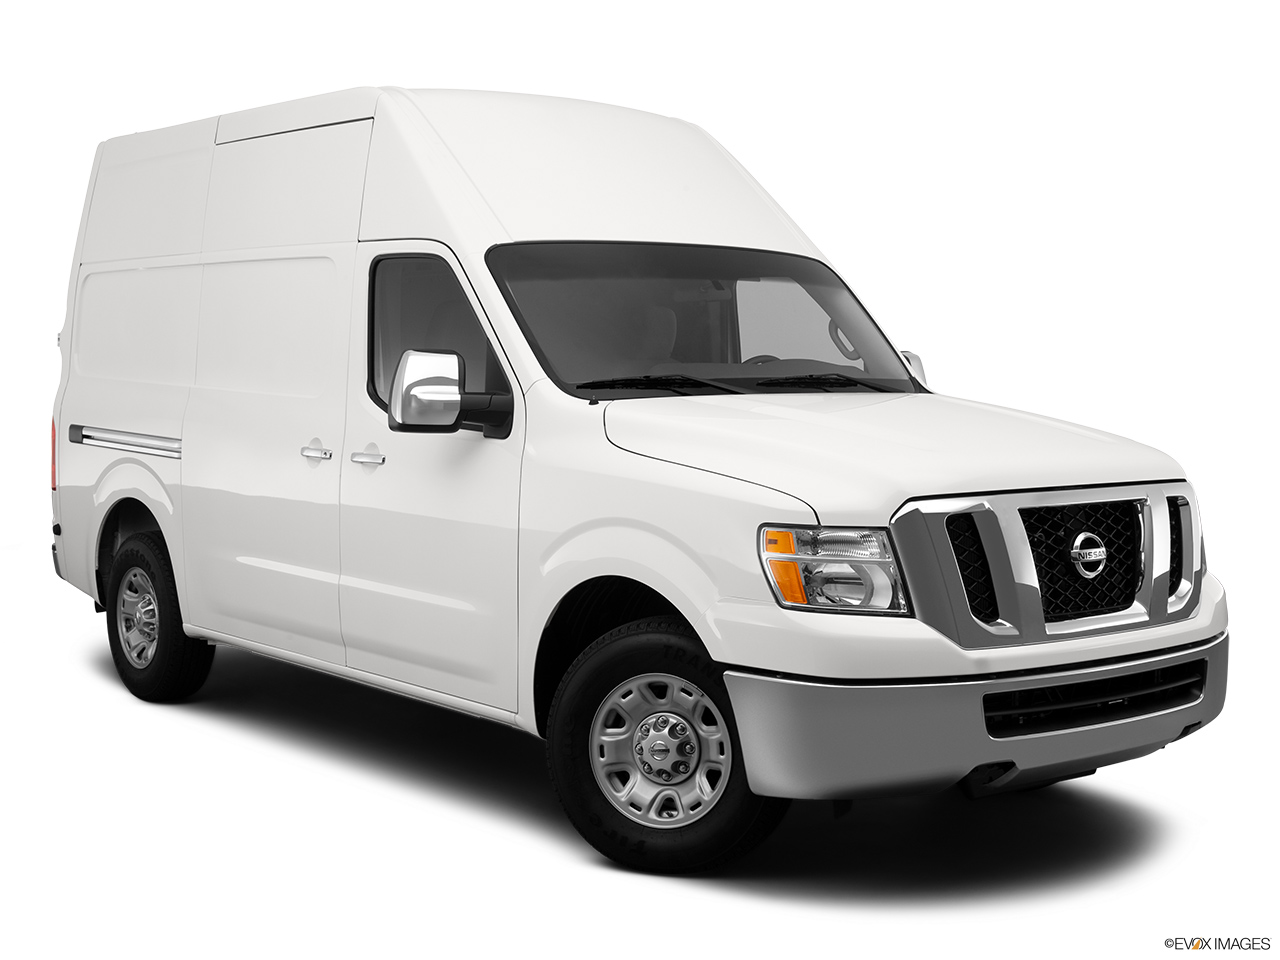 2014 nissan nv standard roof 3500 v8 s. Black Bedroom Furniture Sets. Home Design Ideas